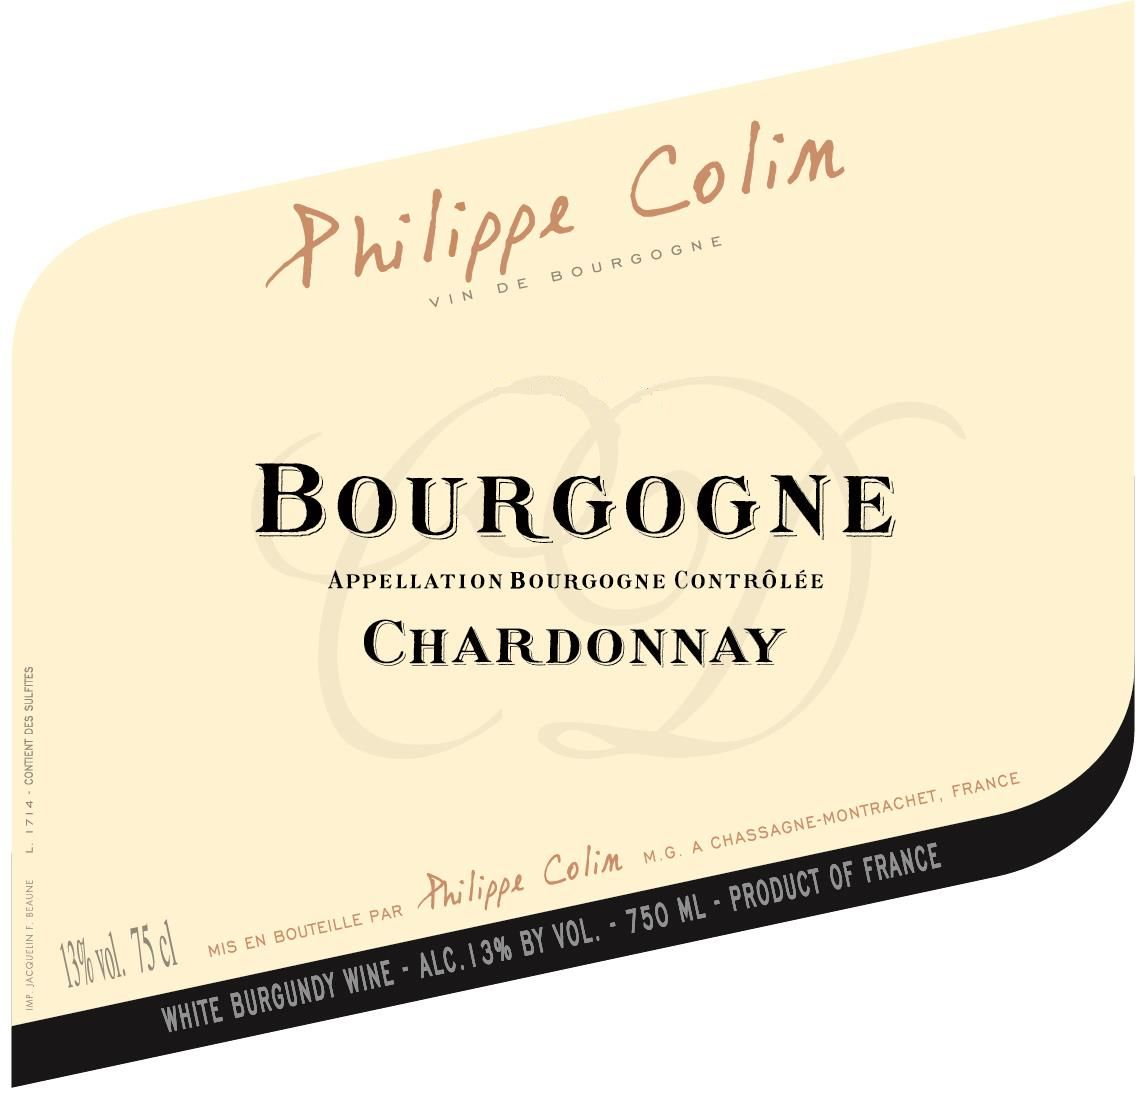 Philippe Colin Bourgogne Blanc 2017  Front Label